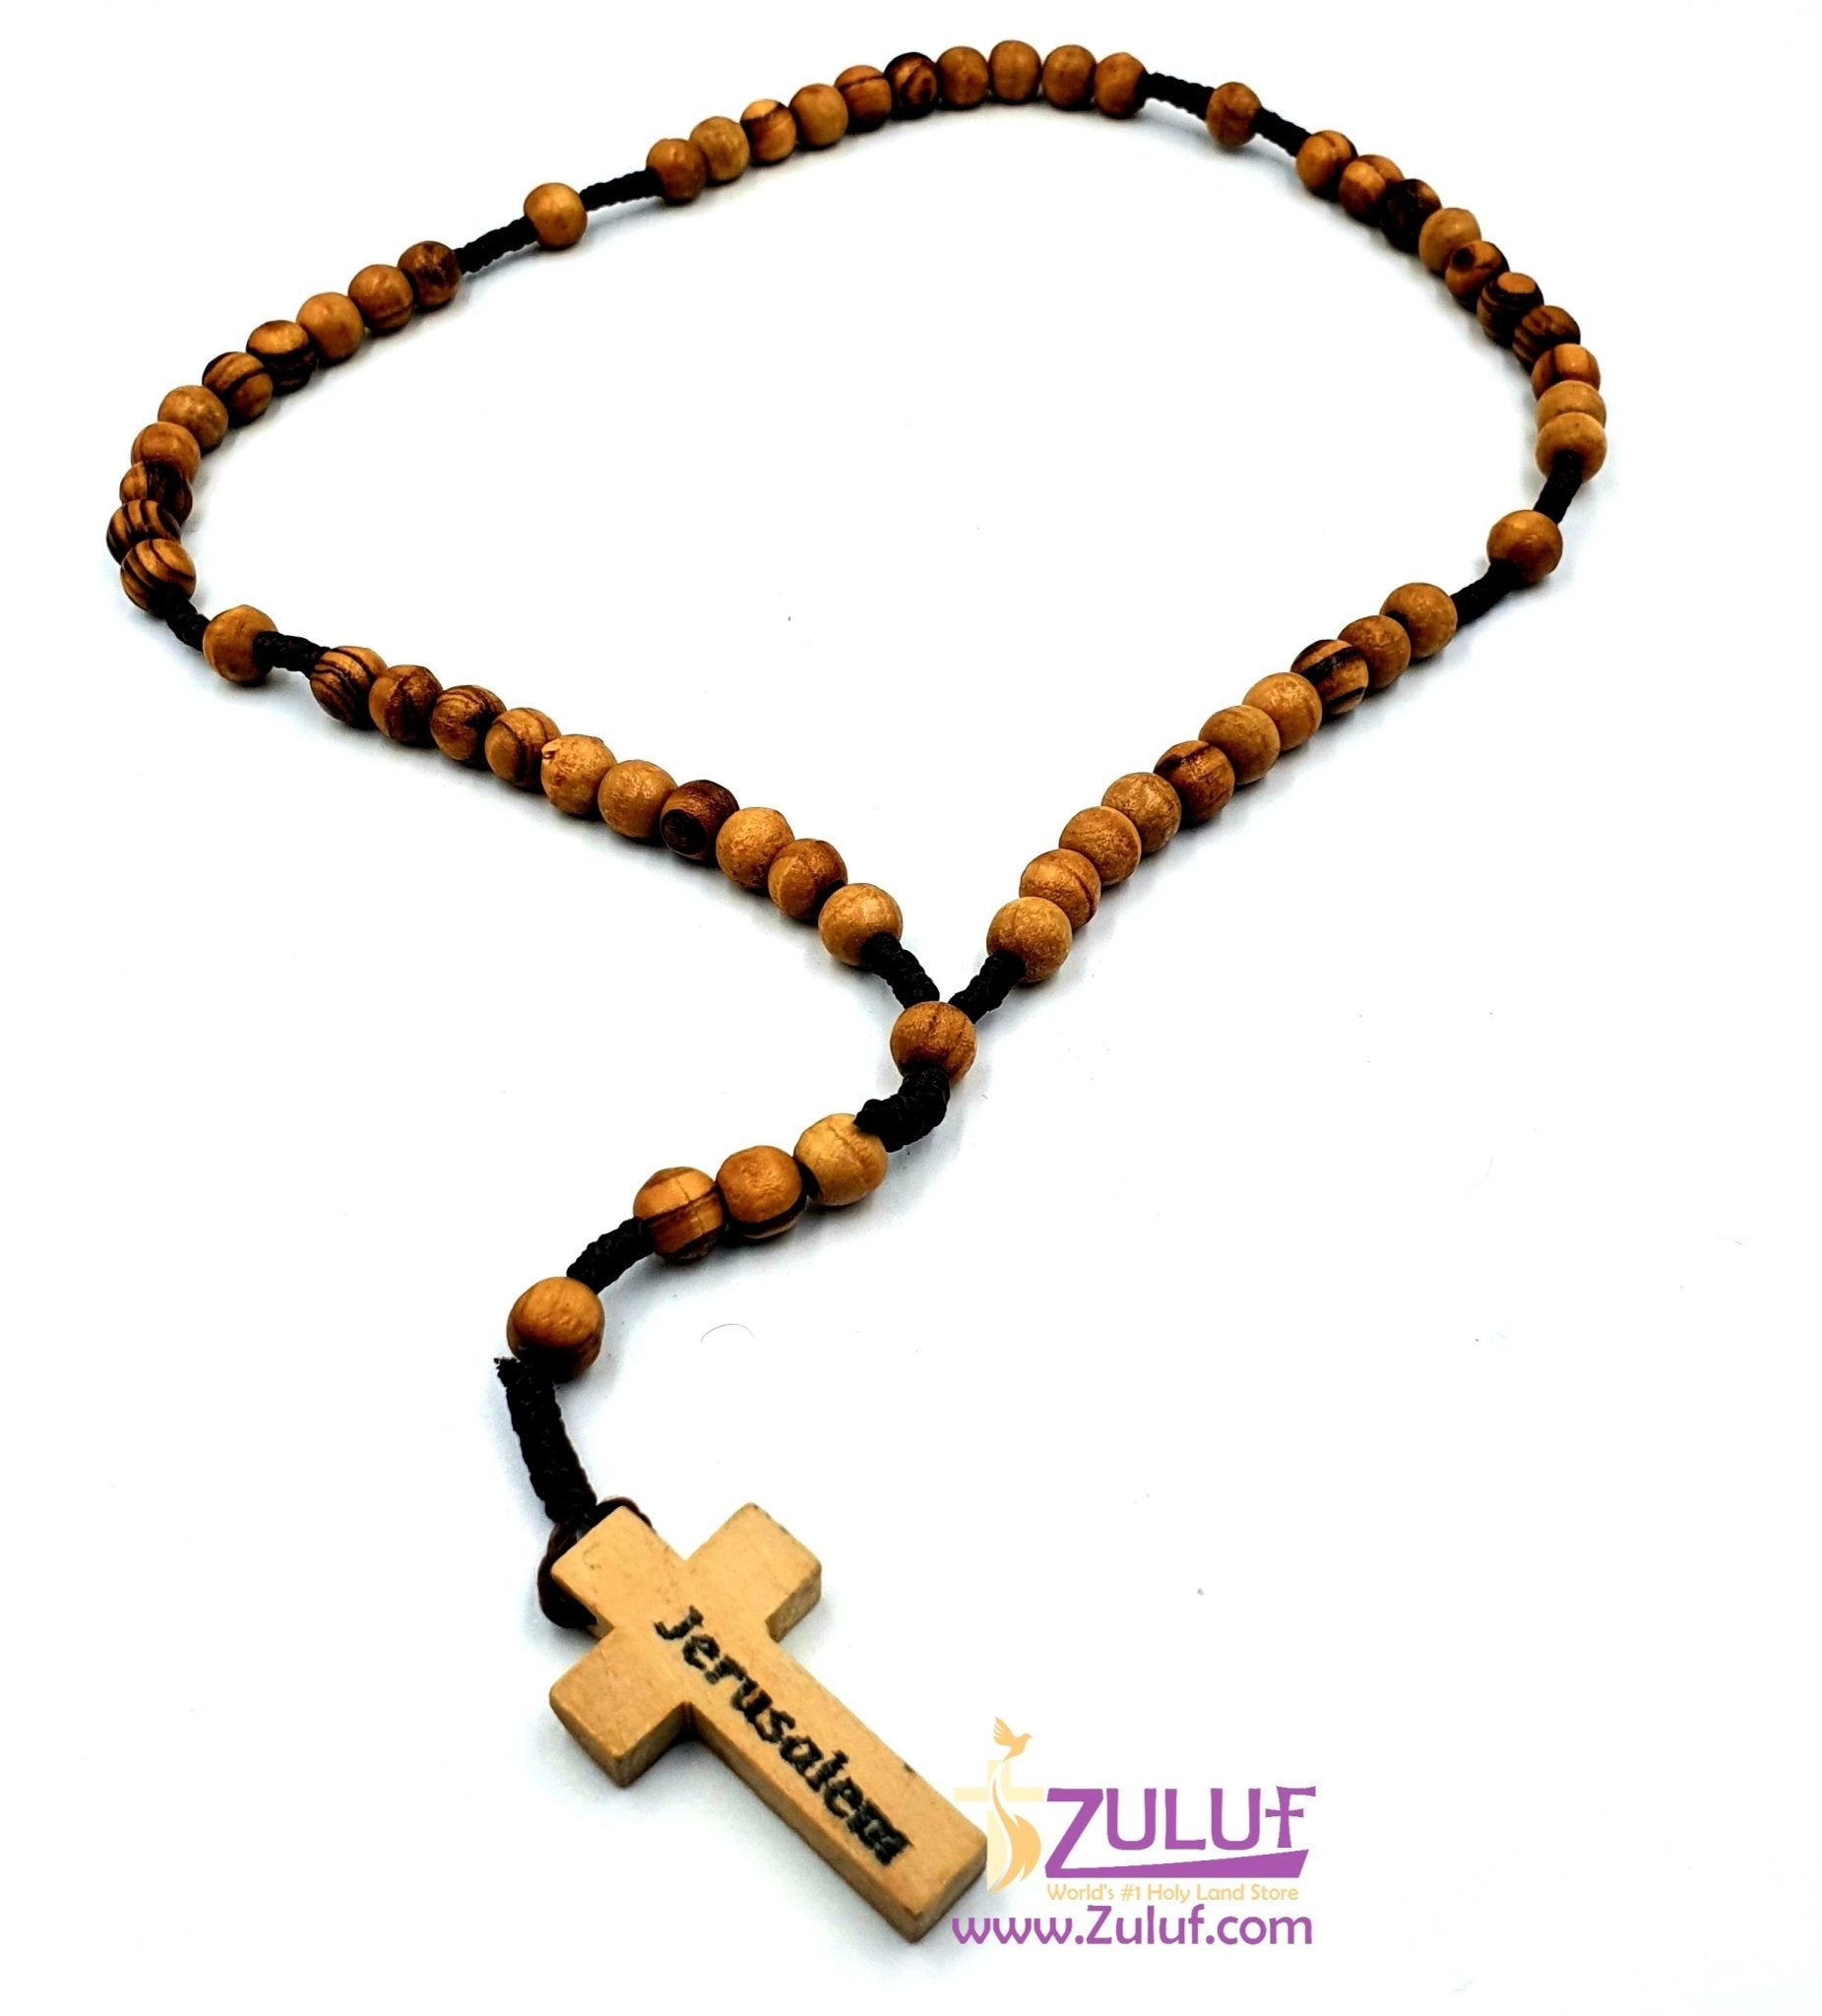 Olive Wood Beads Rosary From Jerusalem - Hand Made (Thread) By Zuluf Factory. (ROS004) - Zuluf